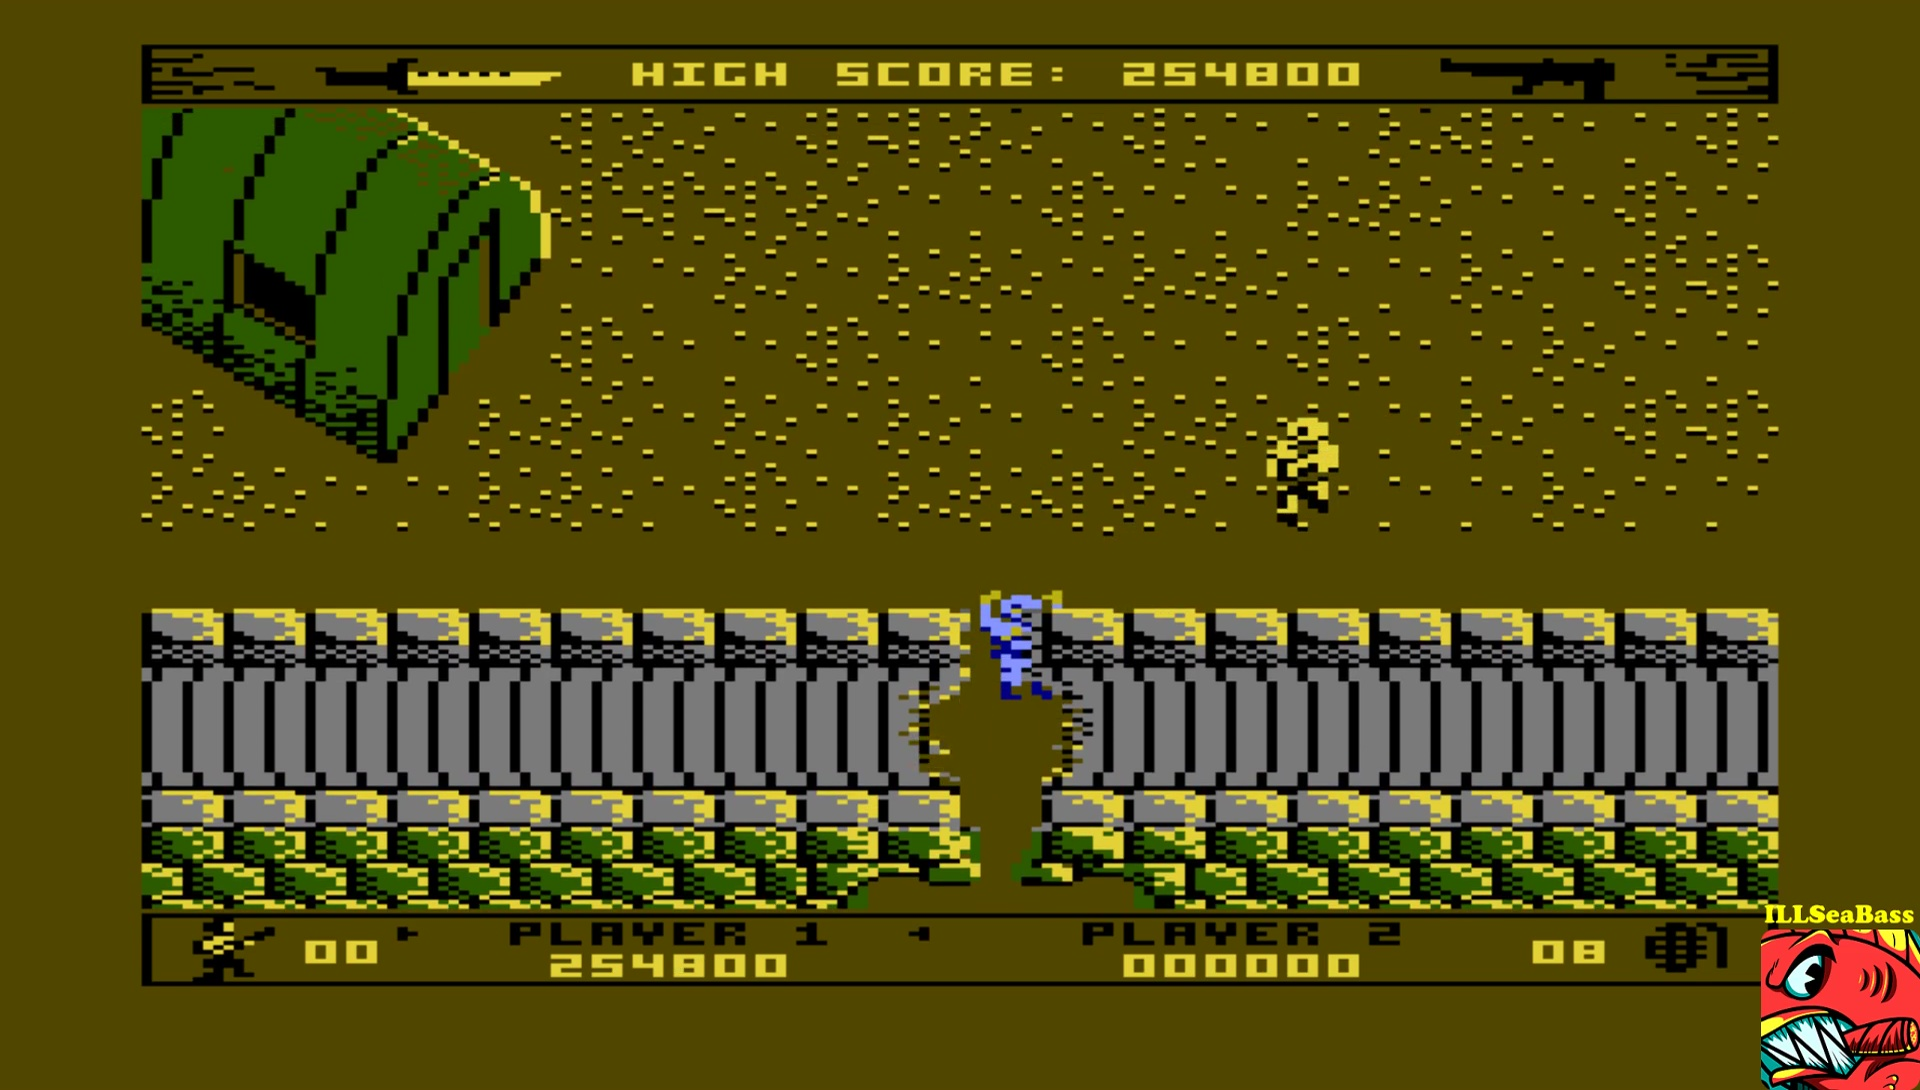 ILLSeaBass: Commando [Normal] (Atari 400/800/XL/XE Emulated) 254,800 points on 2017-07-04 02:36:55